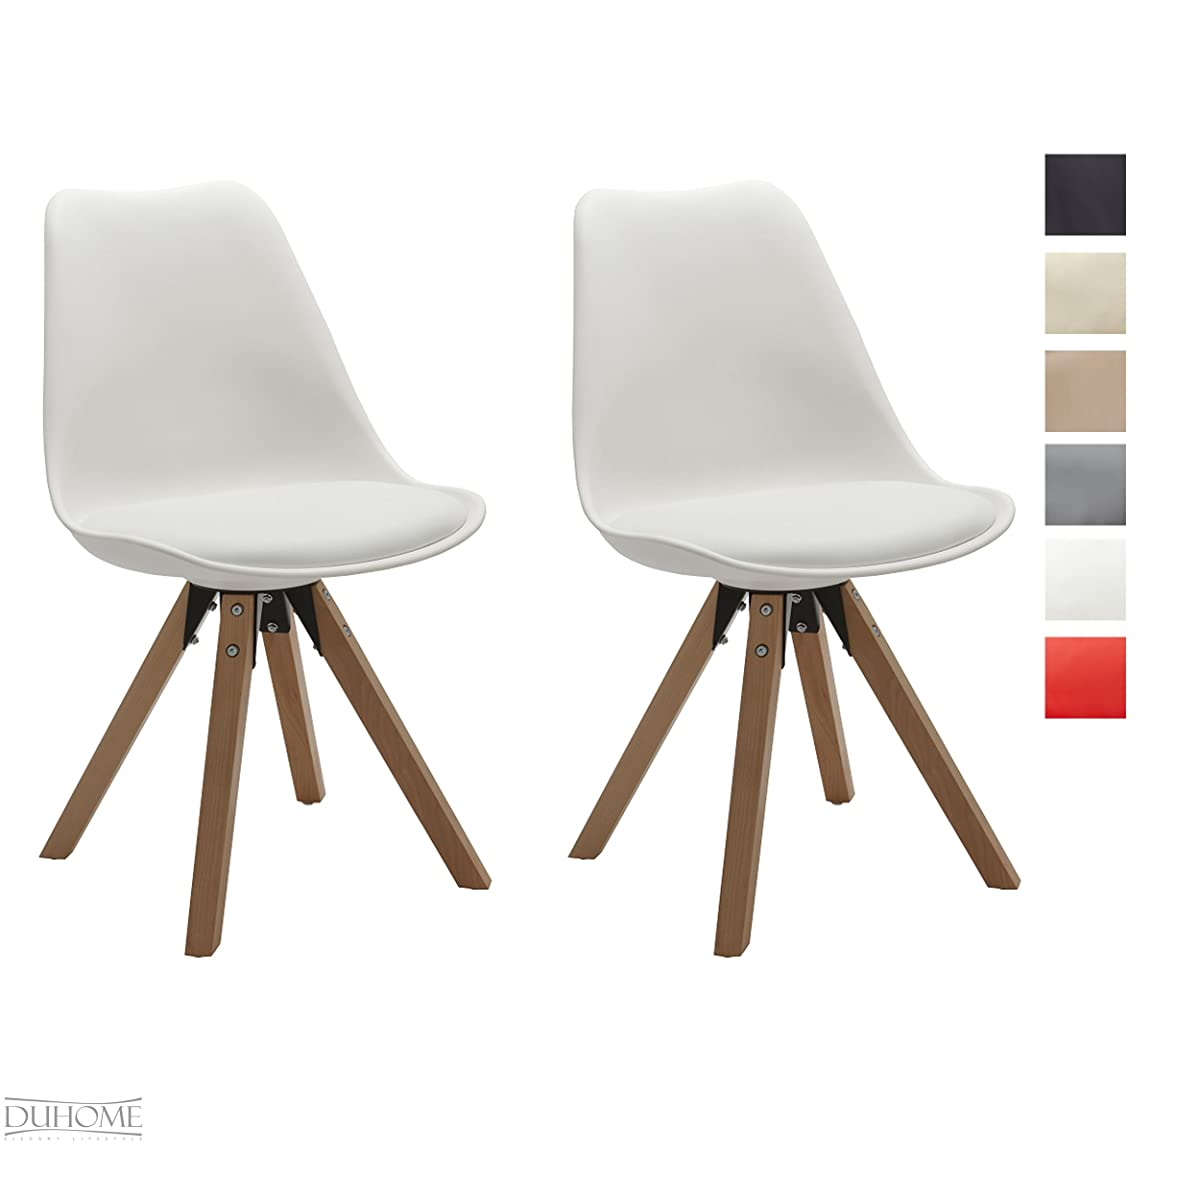 Duhome 2 Pcs Retro Dining Chairs Eames Style Side Chair Synthetic Leather Seat Cushion WY-518M (White)